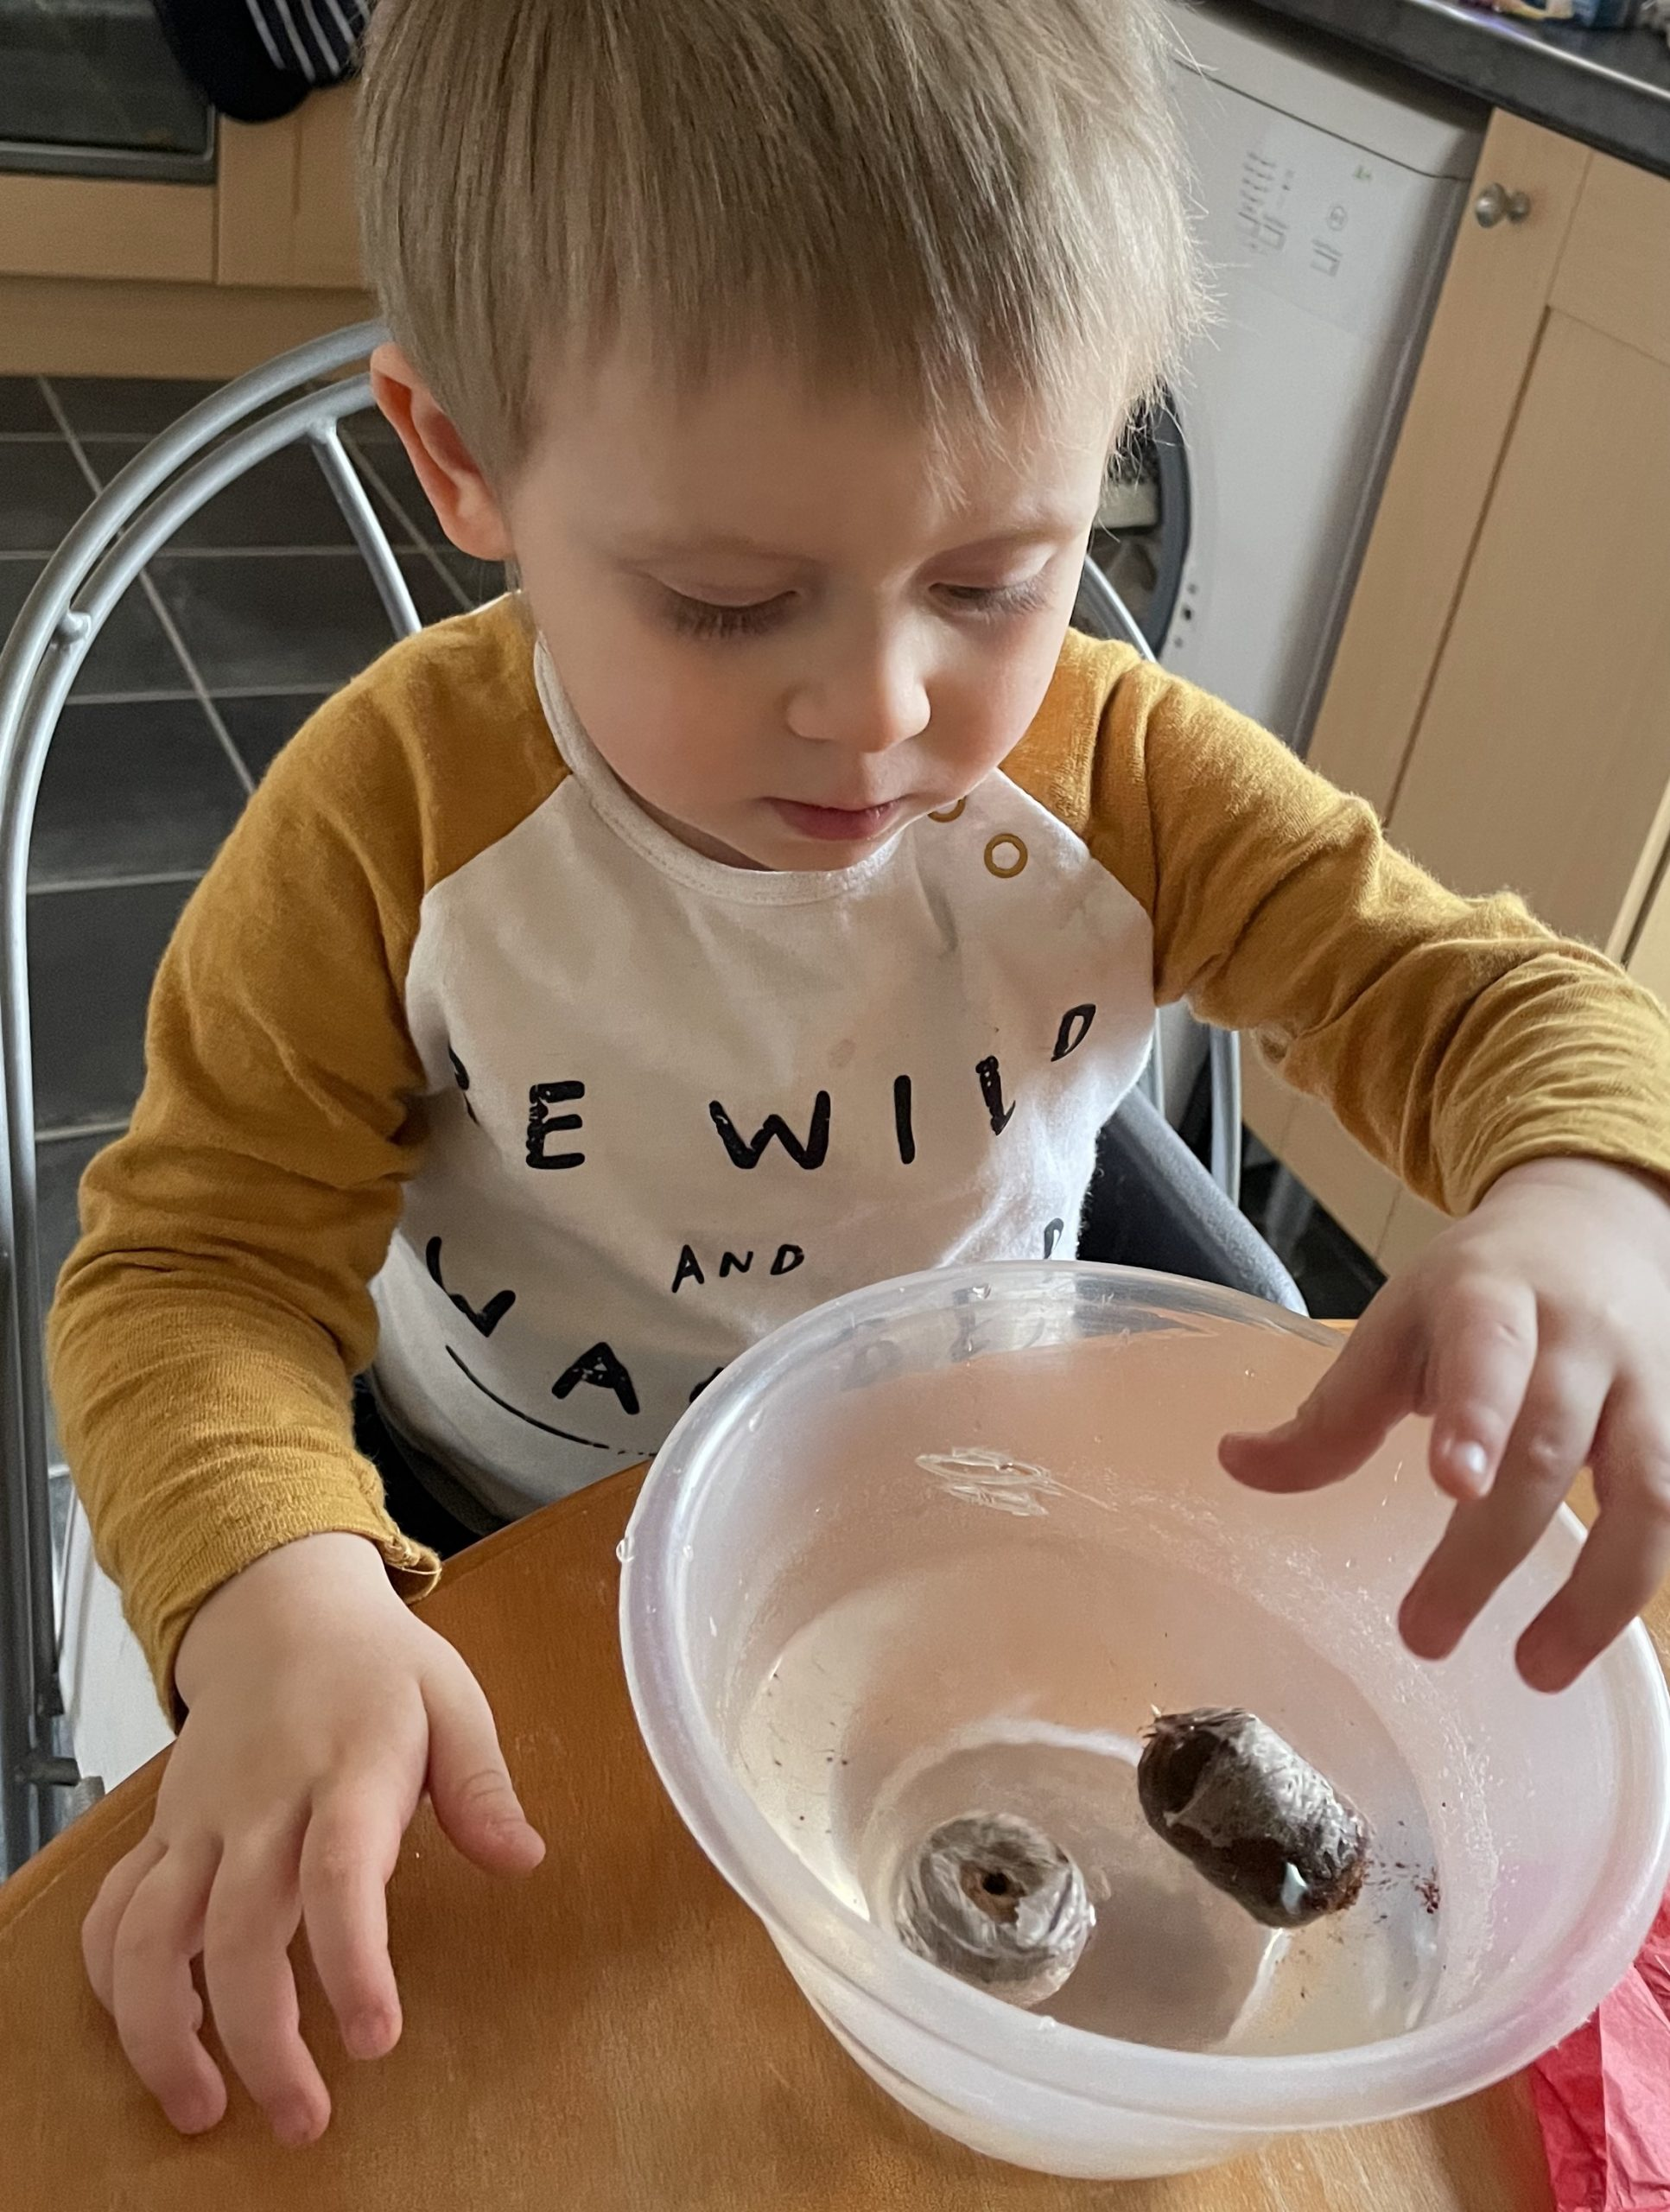 Little J is sat at a wooden table. He is wearing a white top with mustard yellow sleeves. He has a small bowl of water in front of him and he is dropping in two Compost pellets